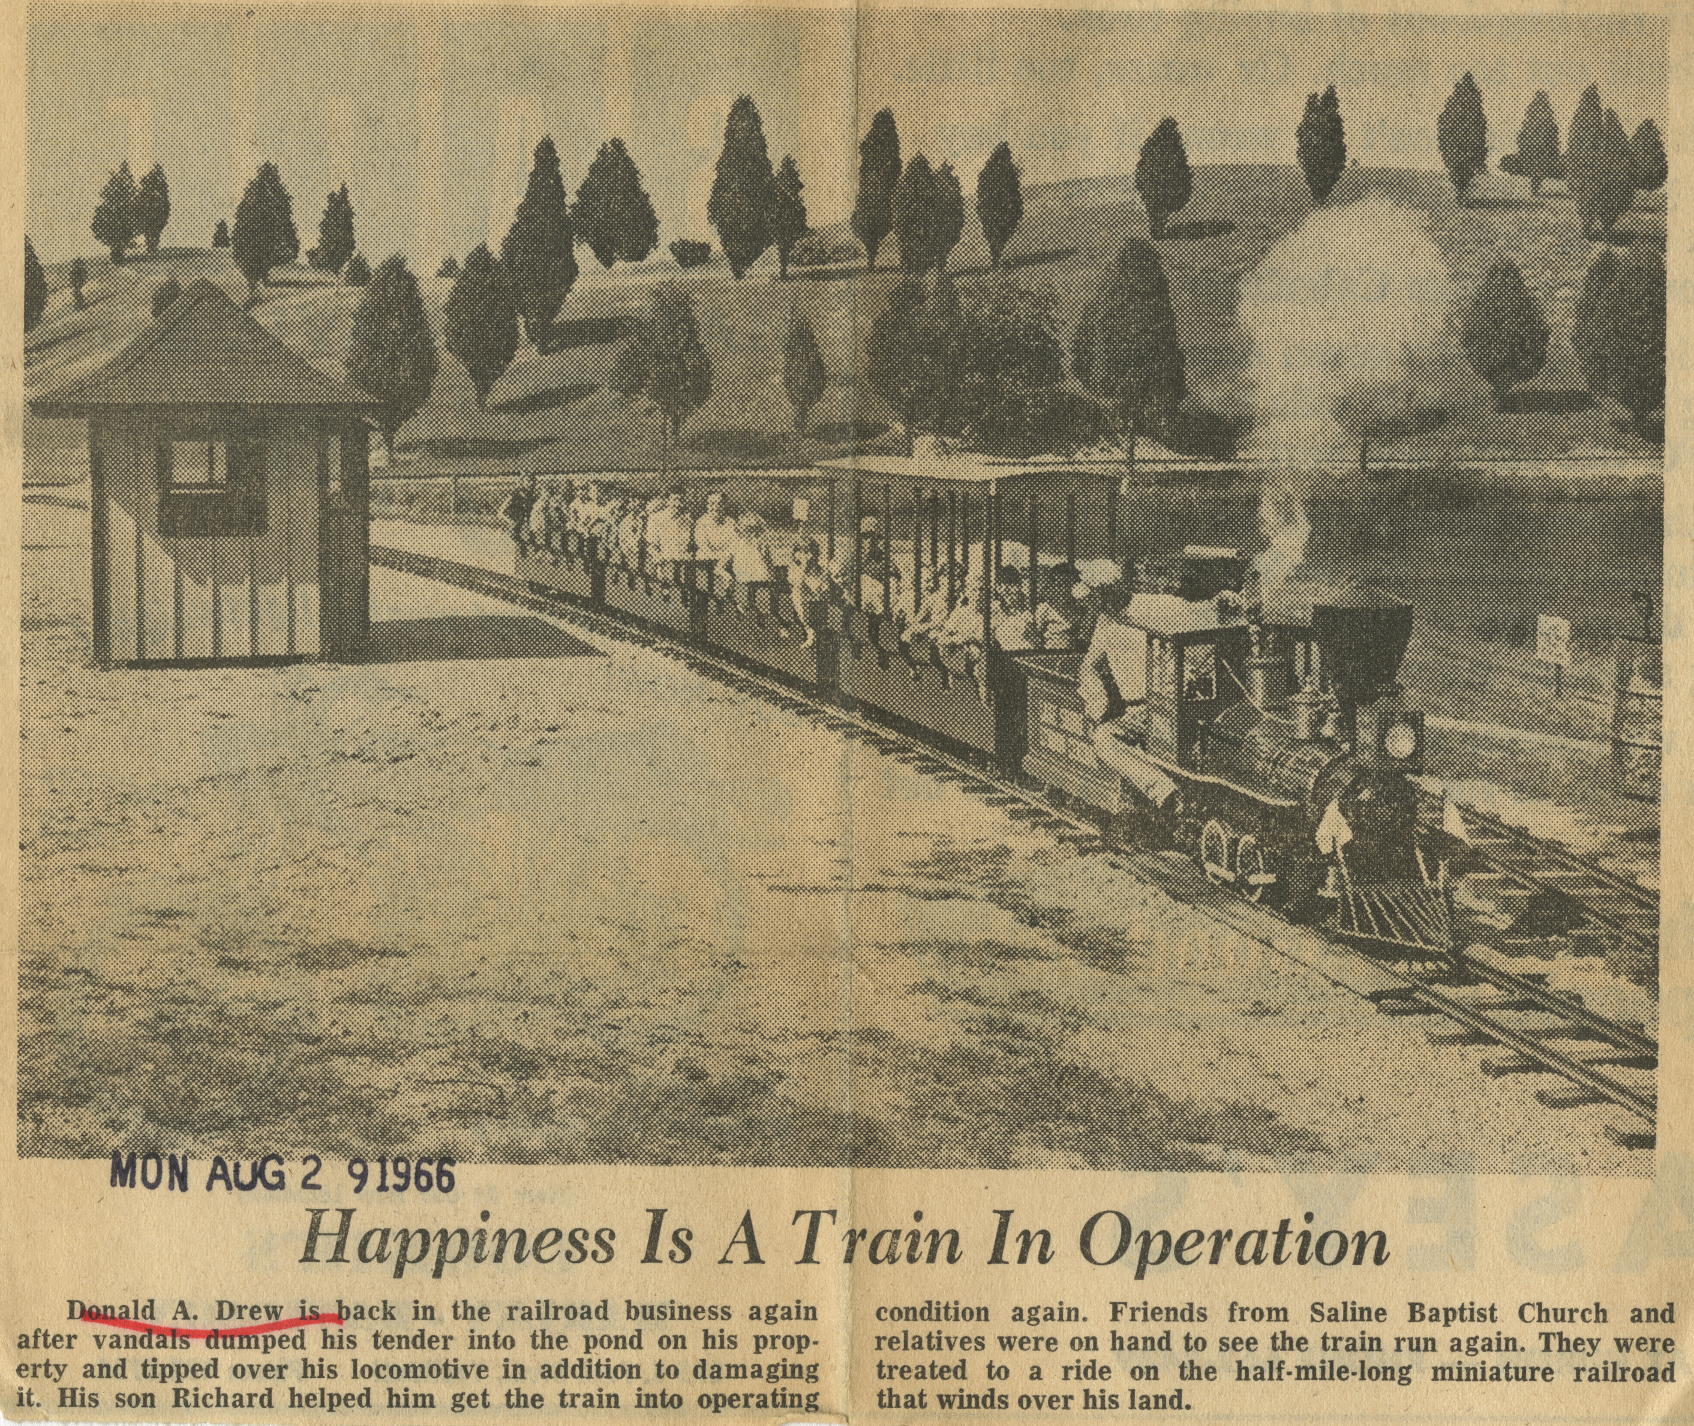 Happiness Is A Train In Operation image